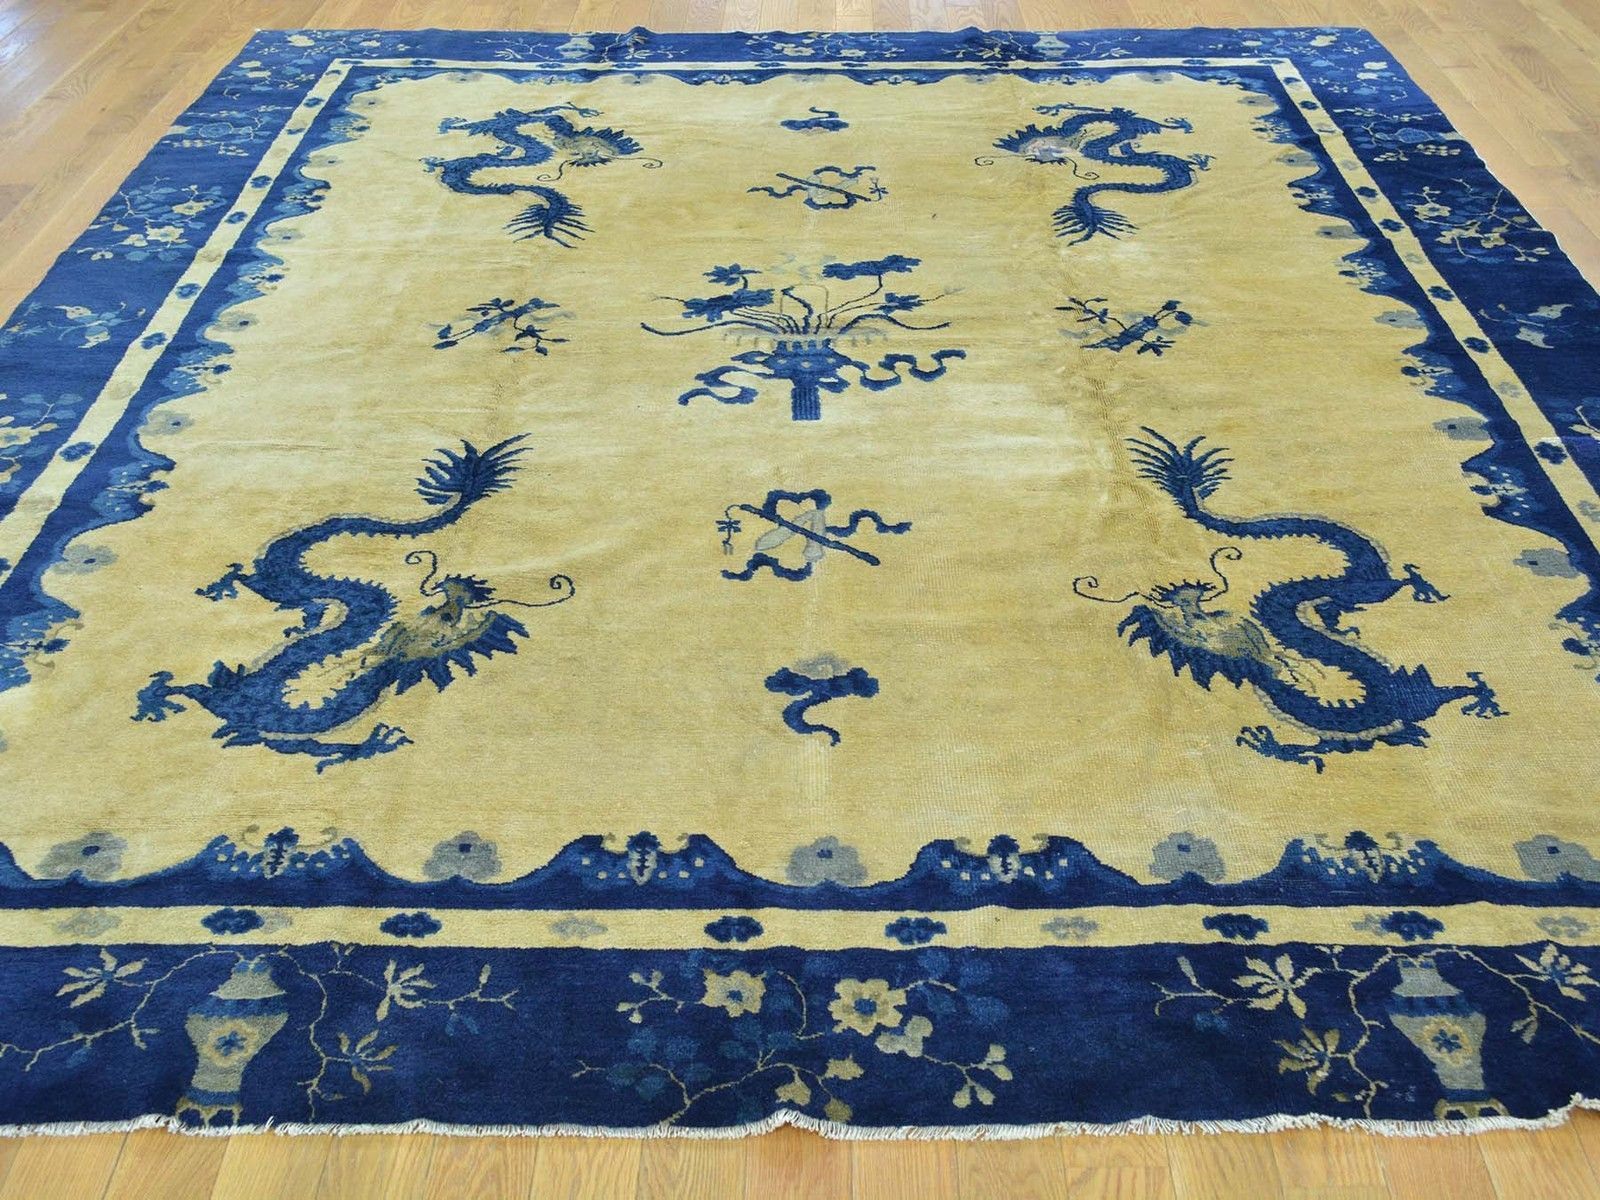 8 039 X9 039 8 034 Antique Chinese Peking Dragon Design Hand Knotted Oriental Rug G29924 Ebay Wool Area Rugs Oriental Rug Rugs